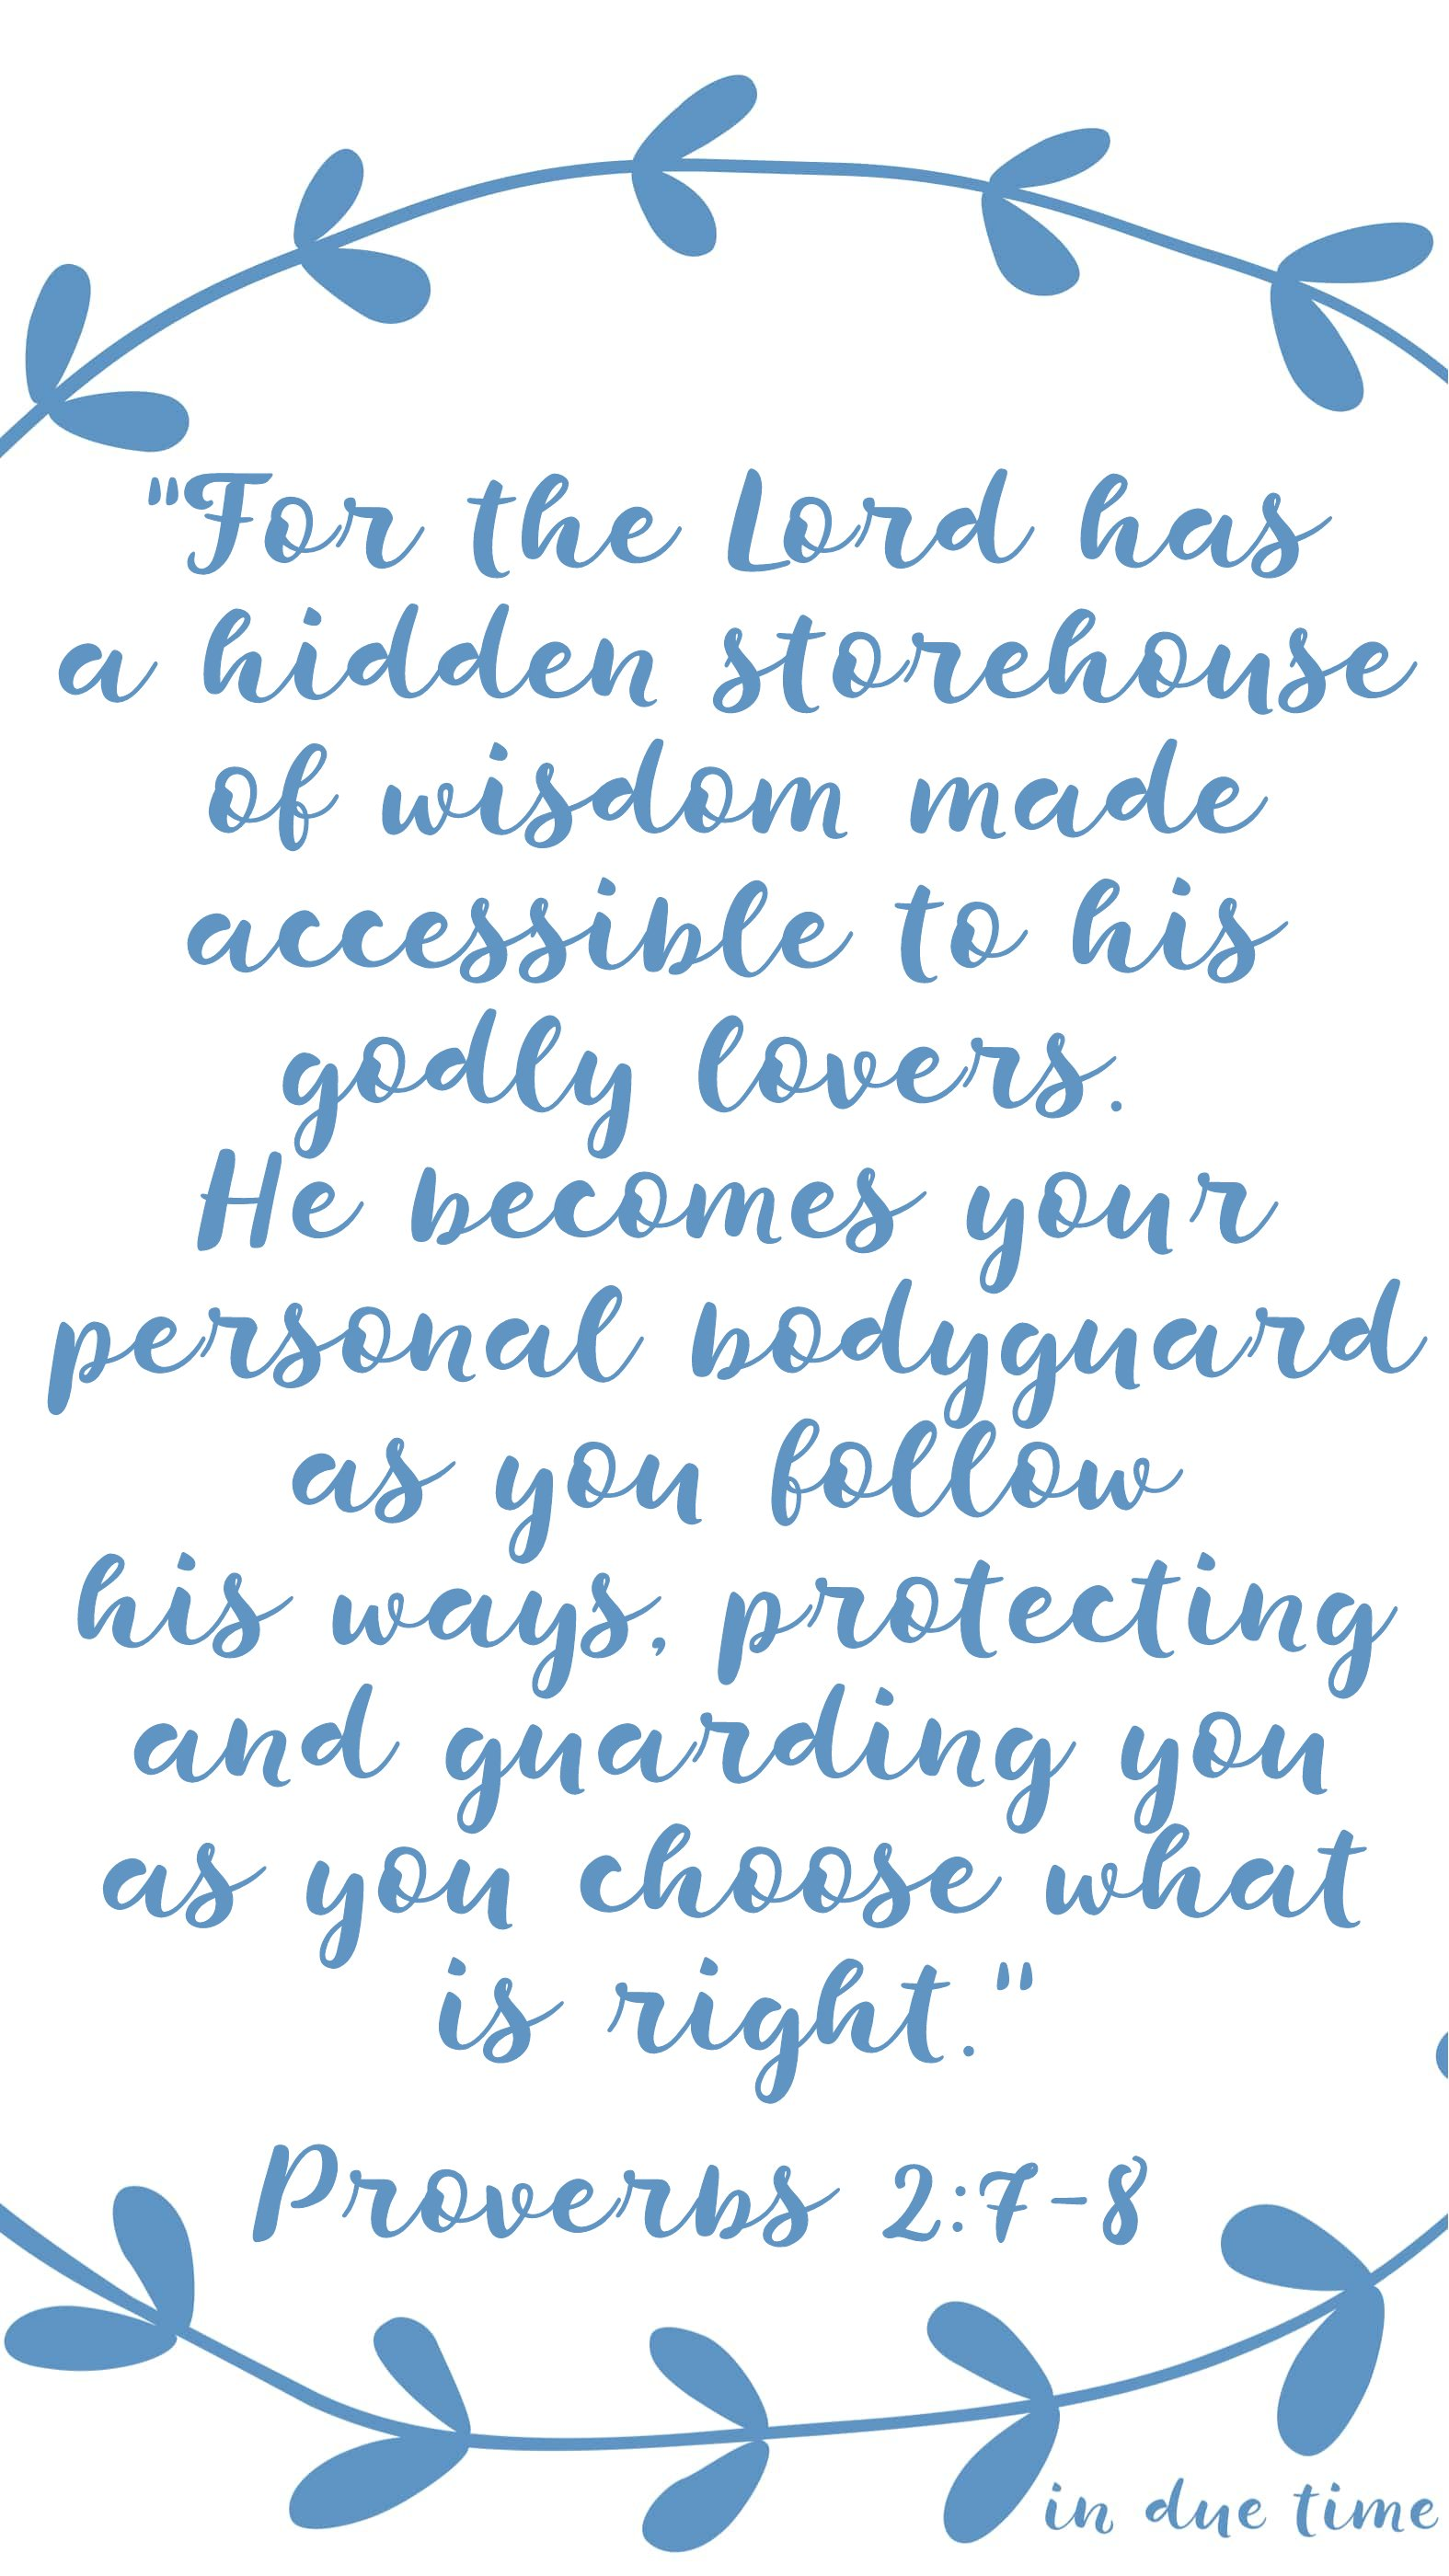 storehouse of wisdom - in due time blog